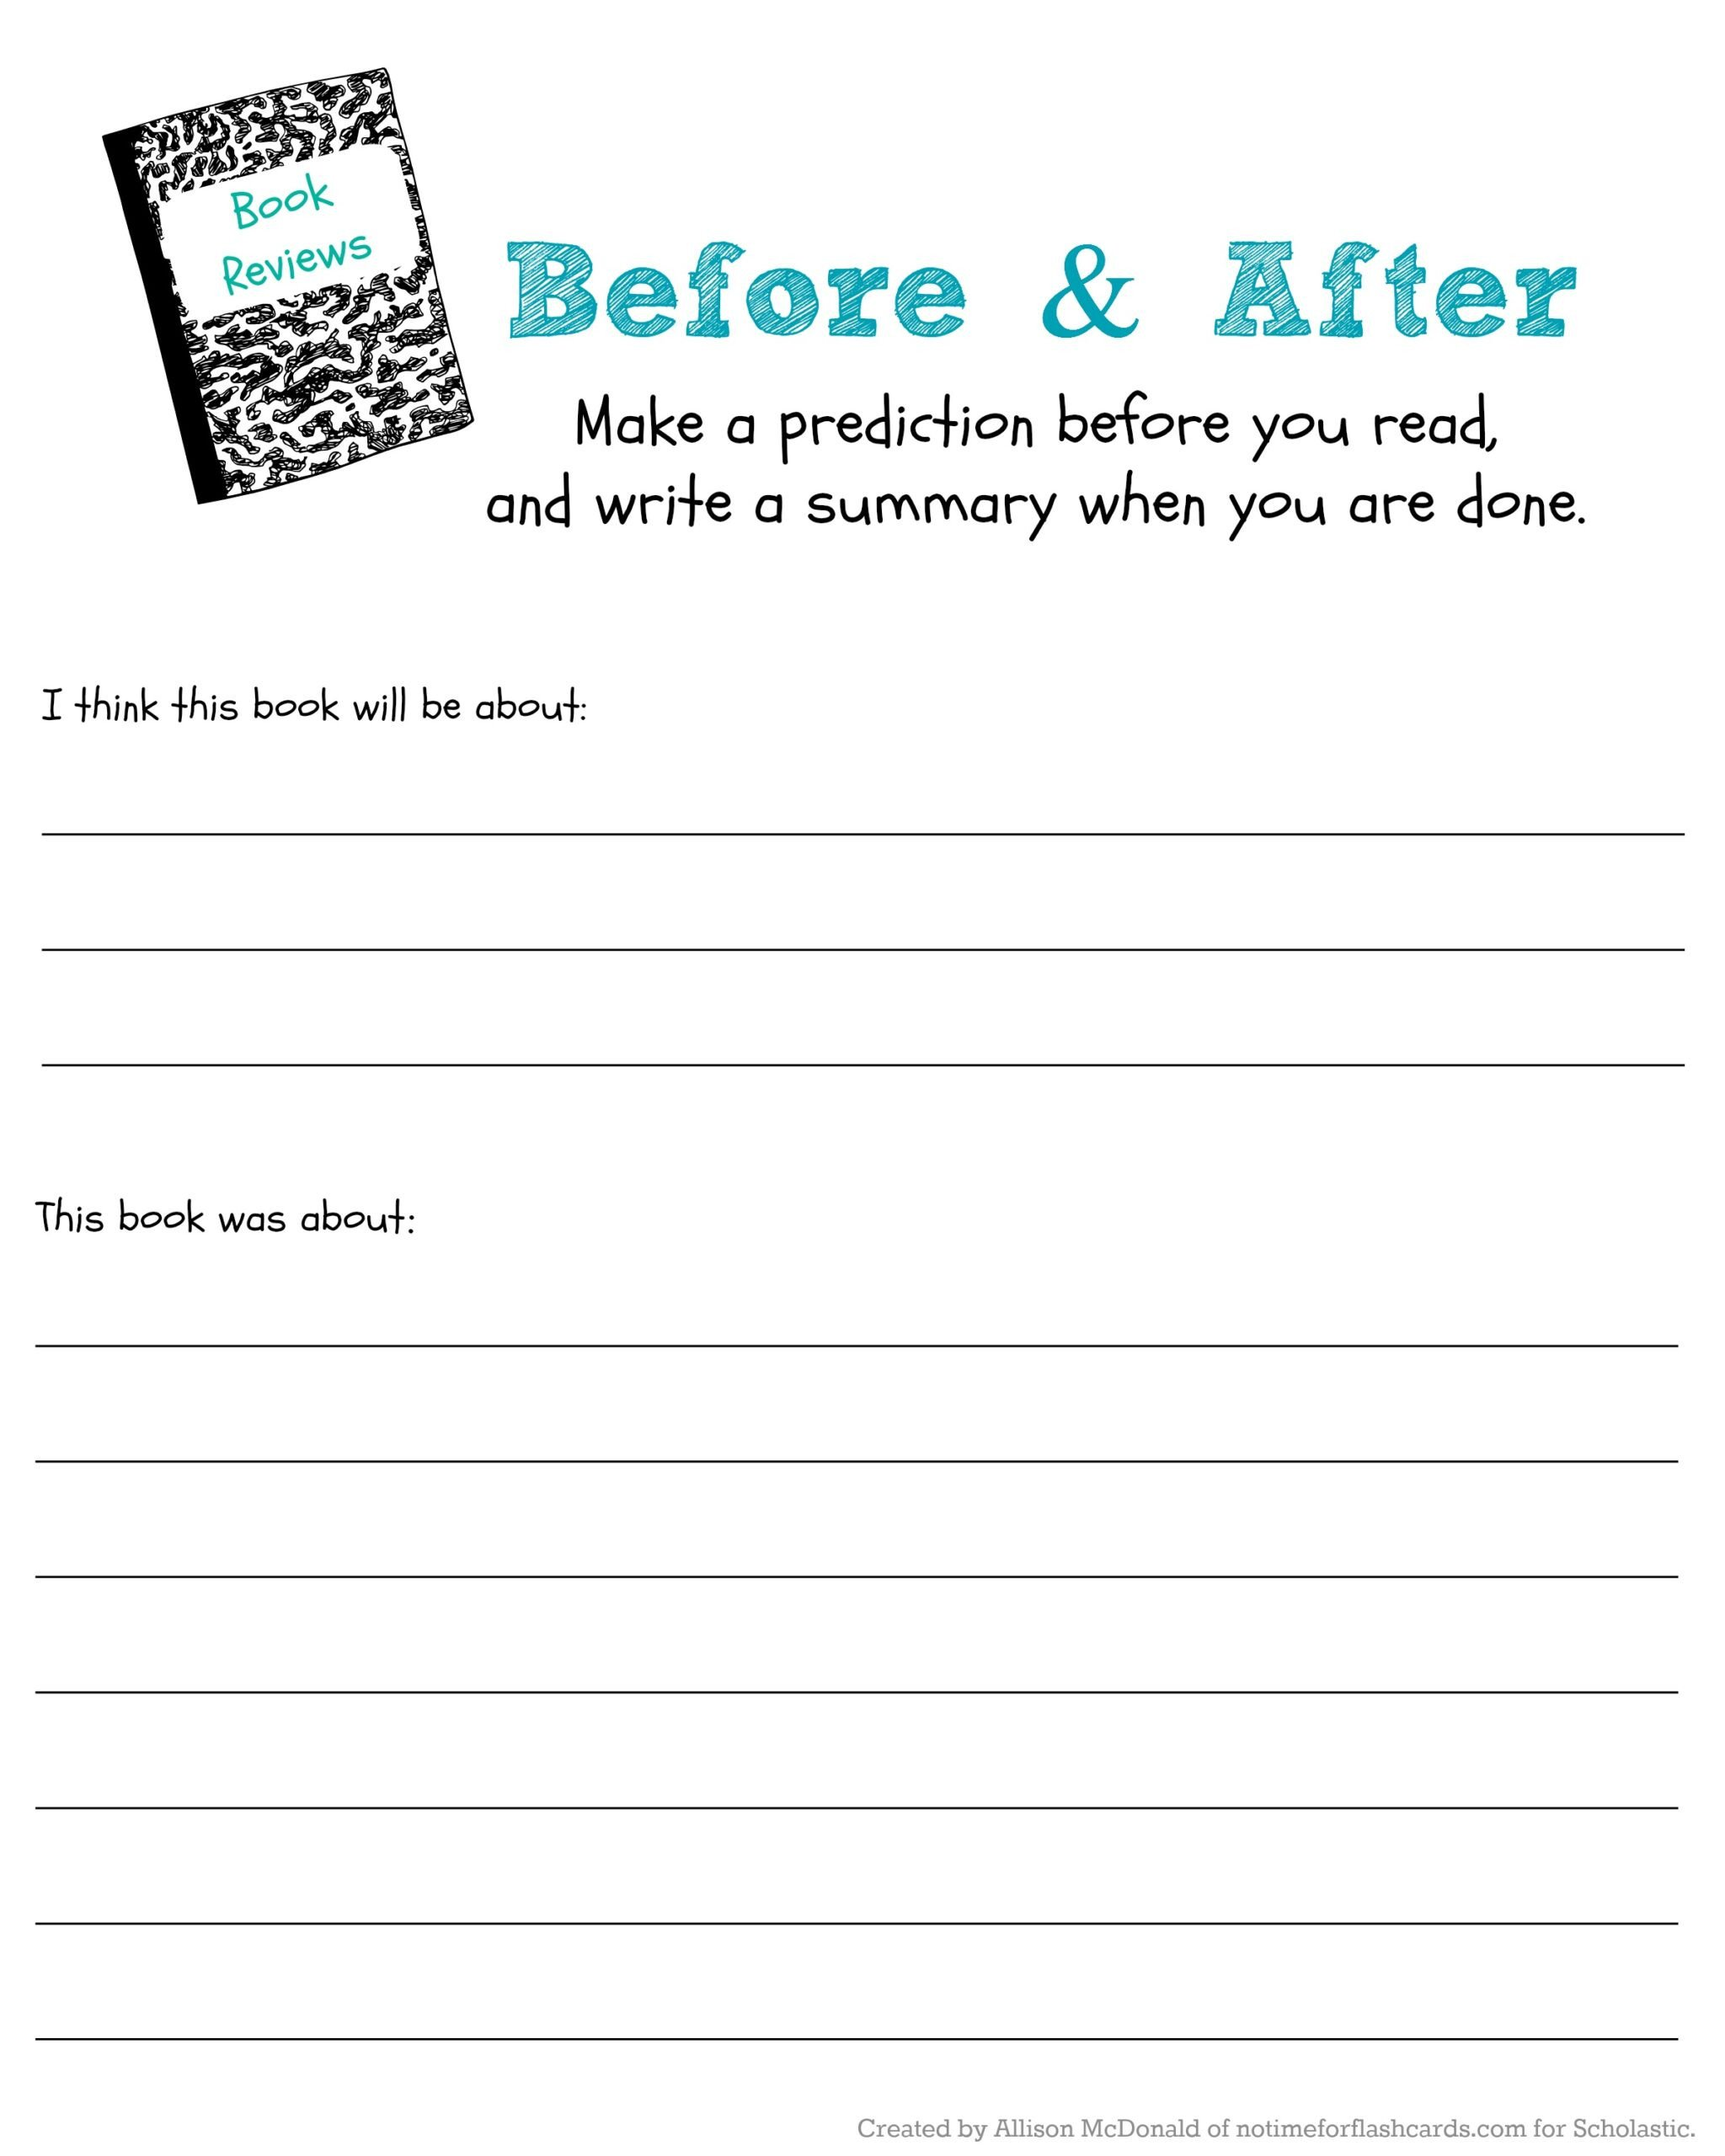 Prediction Worksheets 3rd Grade Judge Book by Its Cover to Predict Read Scholastic Parents